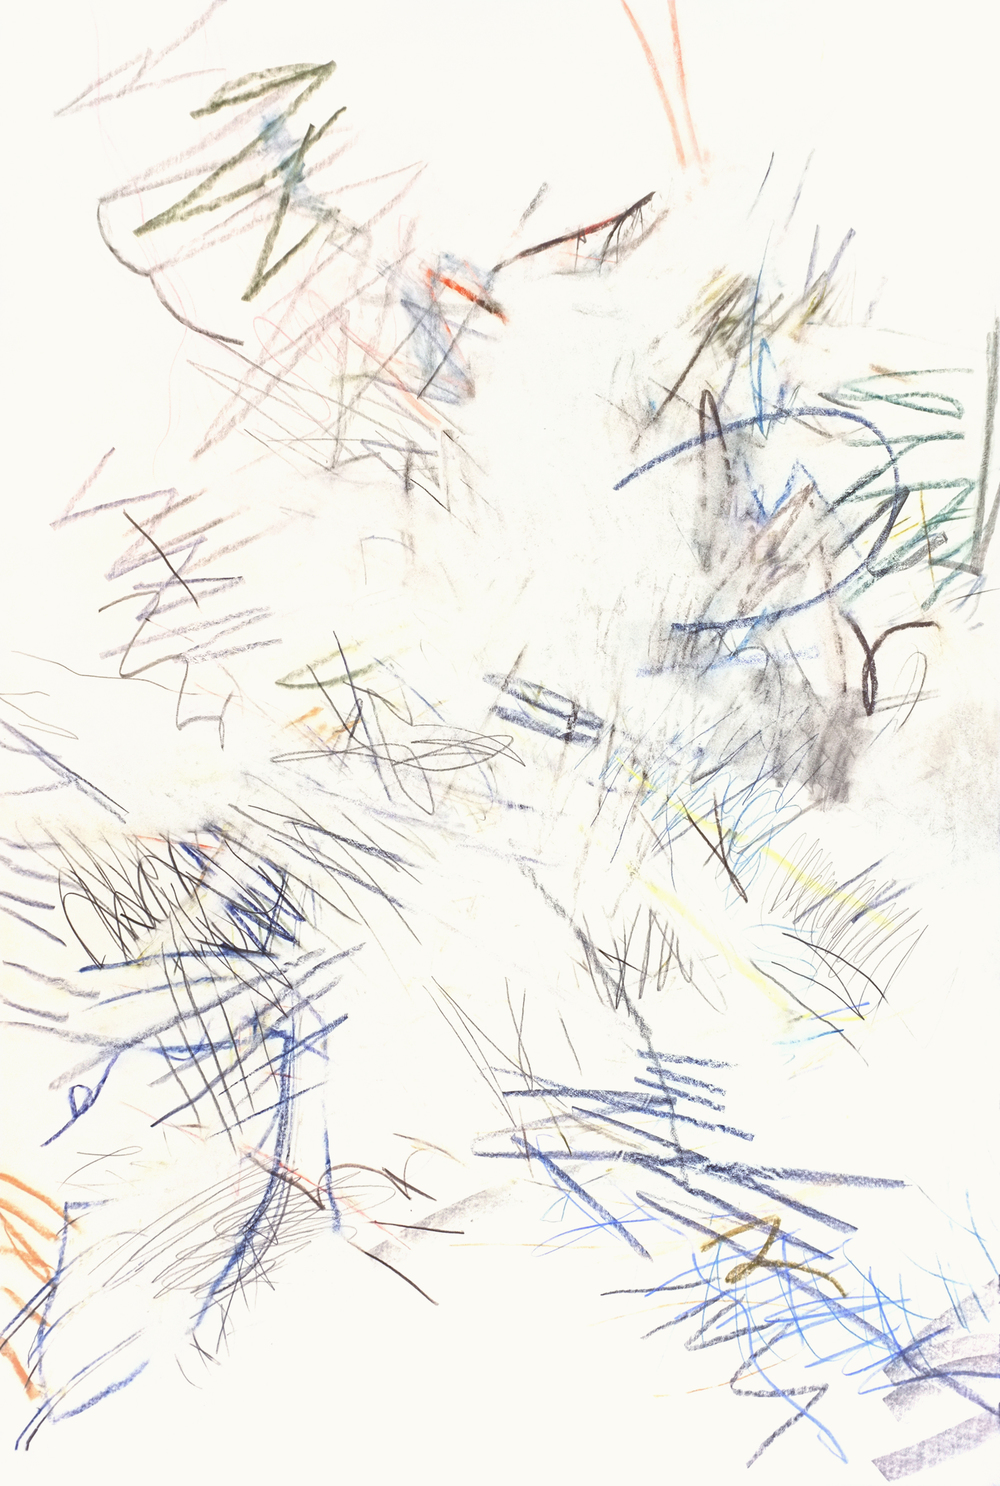 Untitled (cm.16.12), 2016 colored pencil, graphite on paper 37 13/16 x 25 5/16 inches